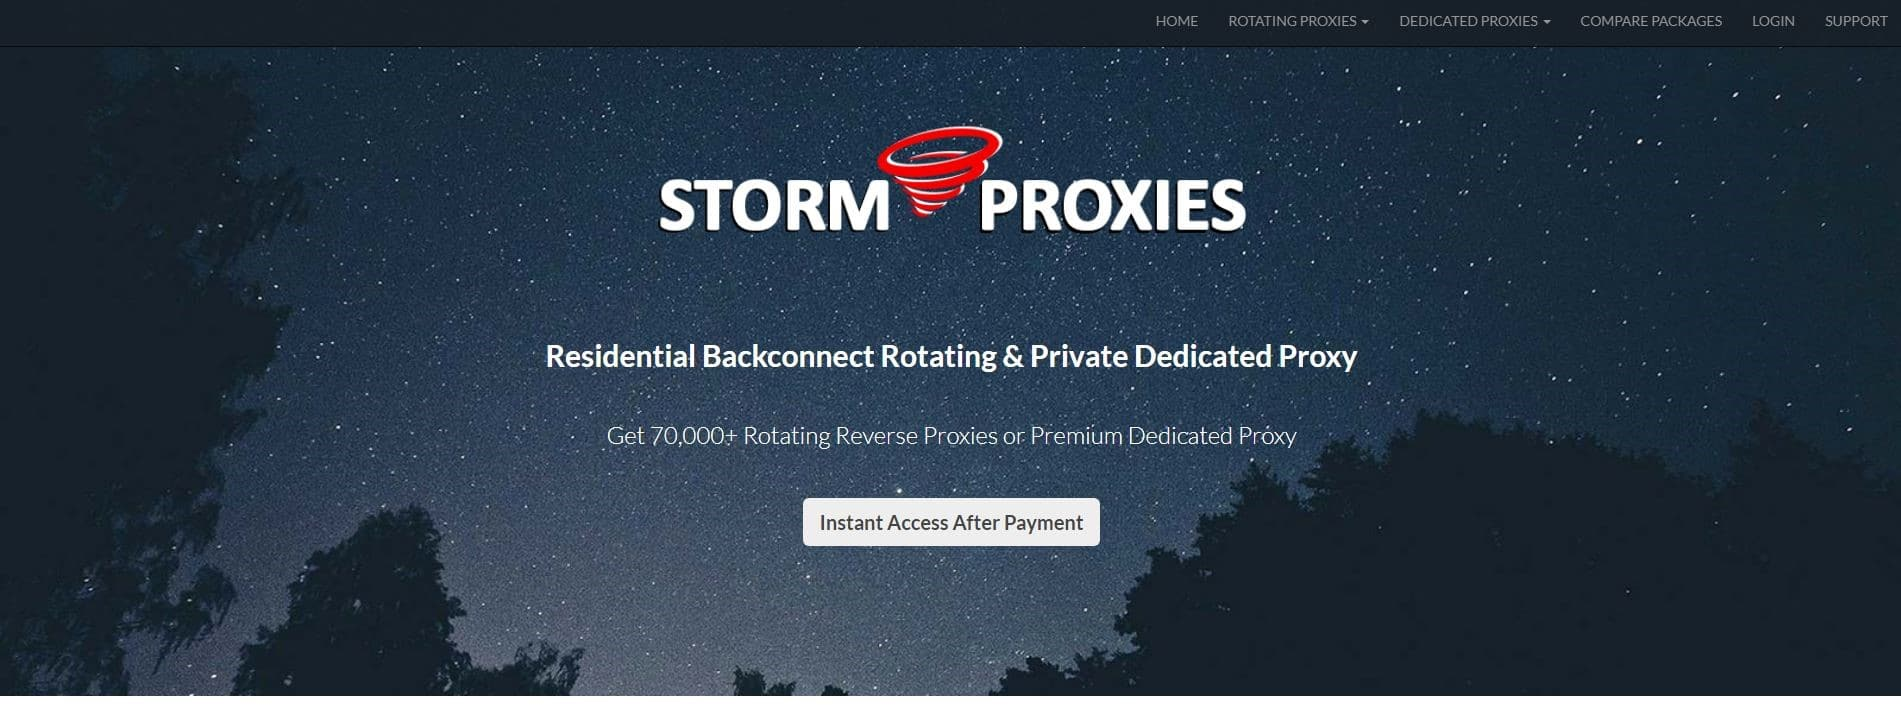 Storm Proxies Homepage2